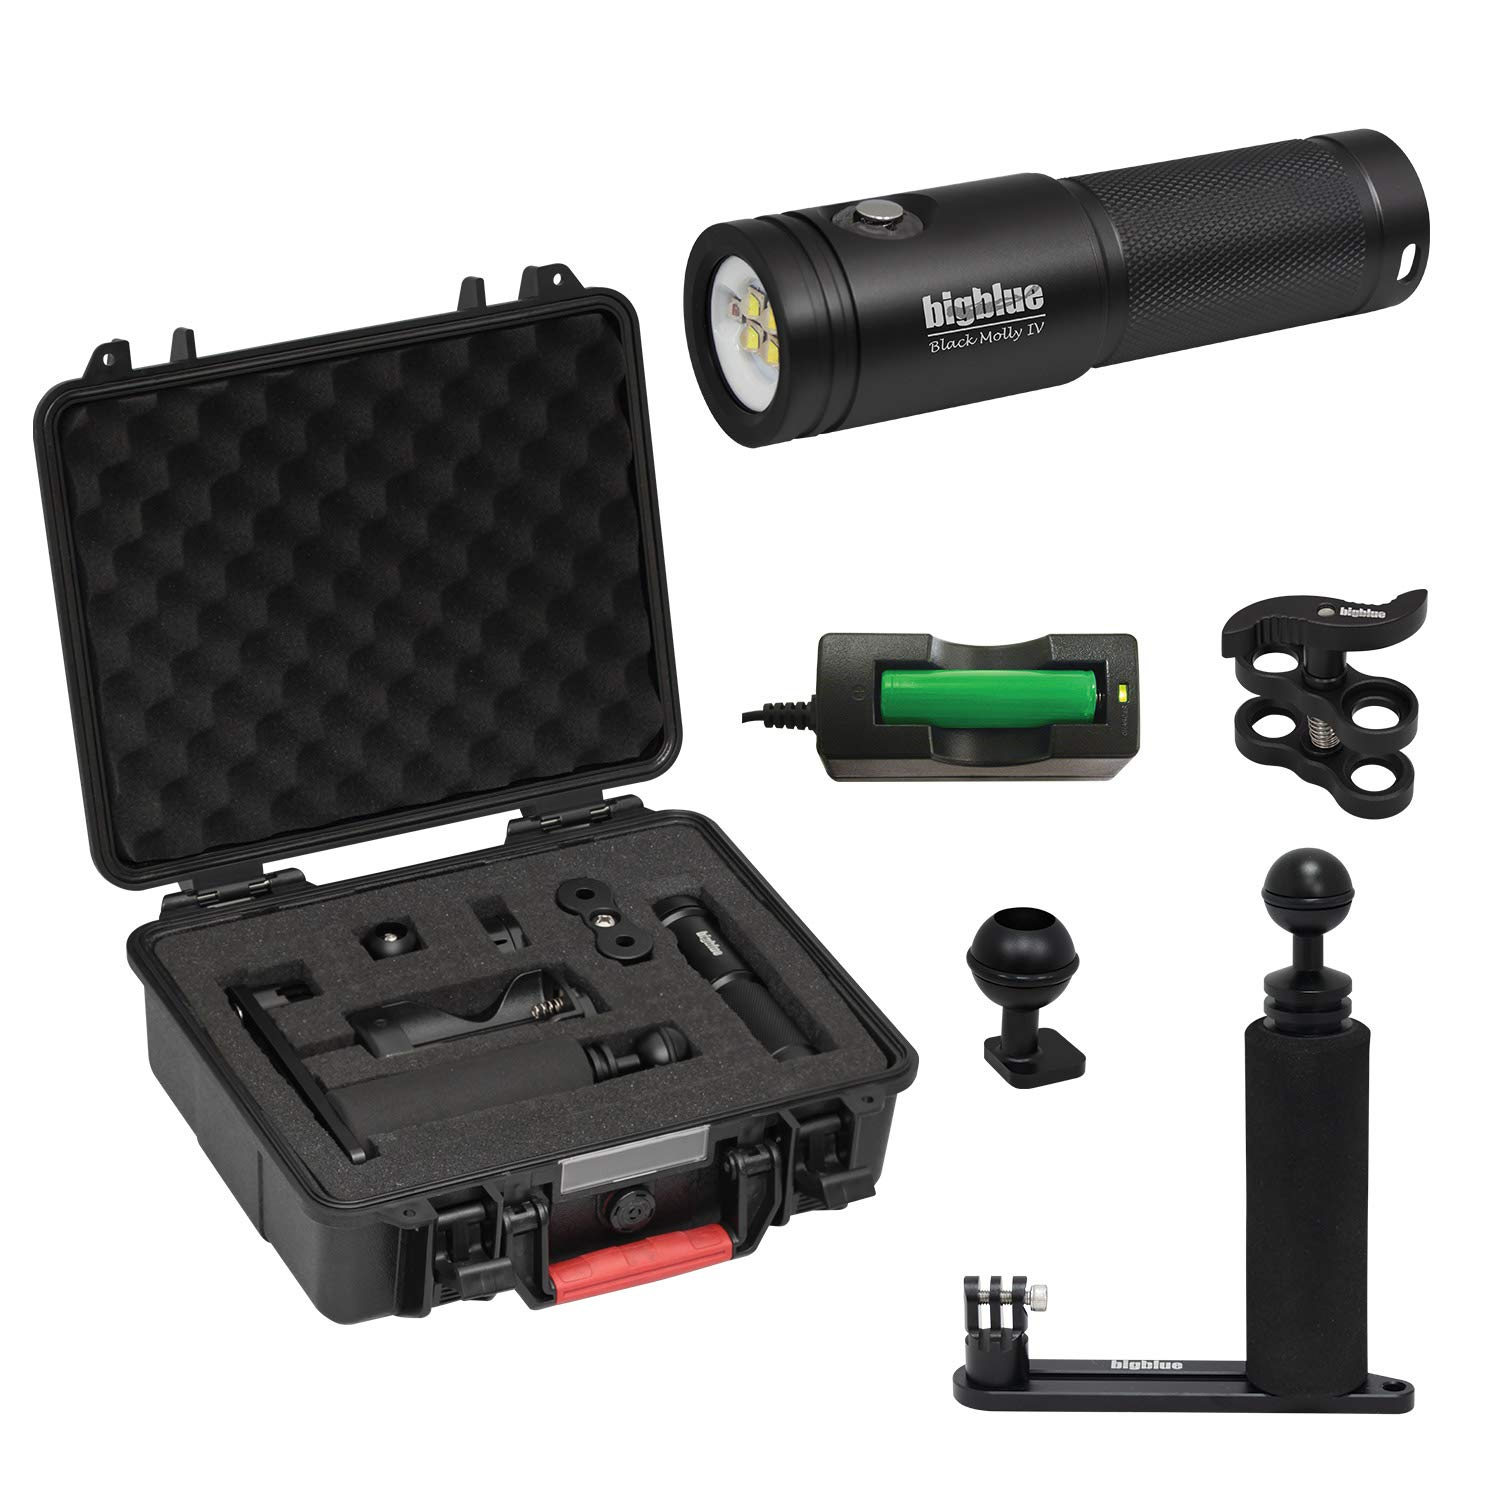 BigBlue AL1800XWP-II 1800 Lumen Tri-Color Dive Video Light (Black with Case and Single Arm Tray)